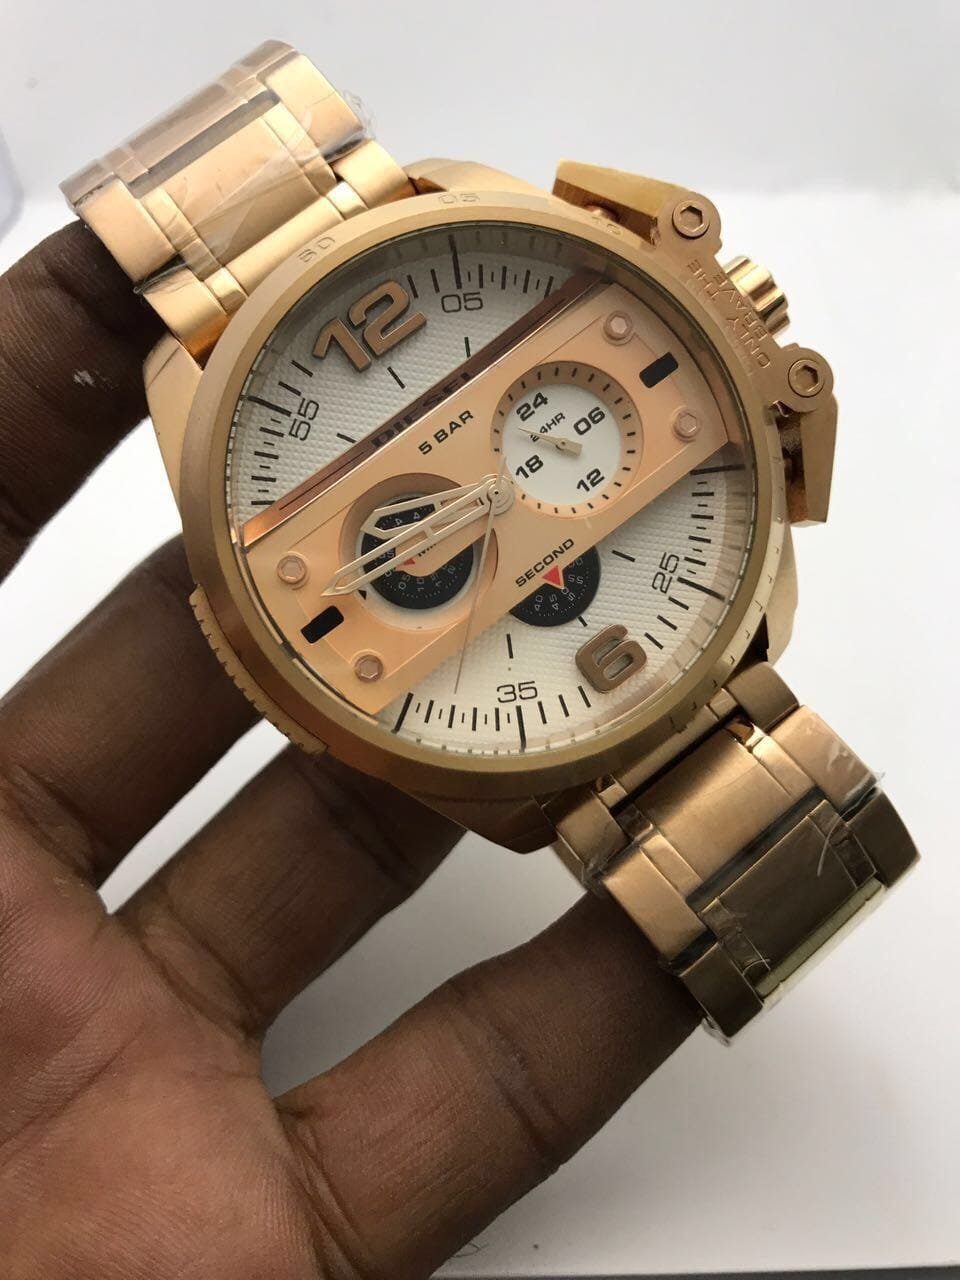 ⛔CARTIER ⛔OMEGA⛔DIESEL⛔ WATCH FOR MANS ⛔BEST QUALITY WATCH ⛔ALL CHRONOGRAPHS WORKING⛔ ⛔STOP WATCH MACHINE WORKING⛔ ⛔DATE WORKING⛔ ⛔BRAND NAME ON BACK&LOCK&LOGO KEY⛔  ⛔₹₹@3300/- FREE SHIP ALL INDIA⛔  TO BUY SEND DM OR WATSAAP 9999142594  Chat with me on the #RoposoApp to buy this product! #roposo #thebazaar  #cartierwatches #diesel-watch #dieselwatches #watchaddict  #stylishwatches  #roposo #chattobuy  #fashion  #shopping  #shop  #buy  #seller  #newarrival #onlineshopping  #latesttrend #fashionpost  #fashionlover  #fashionoftheday #fashionlook #fashionlover #trendy  #trendyfashion  #onlineboutique  #onlinestore  #onlineshop